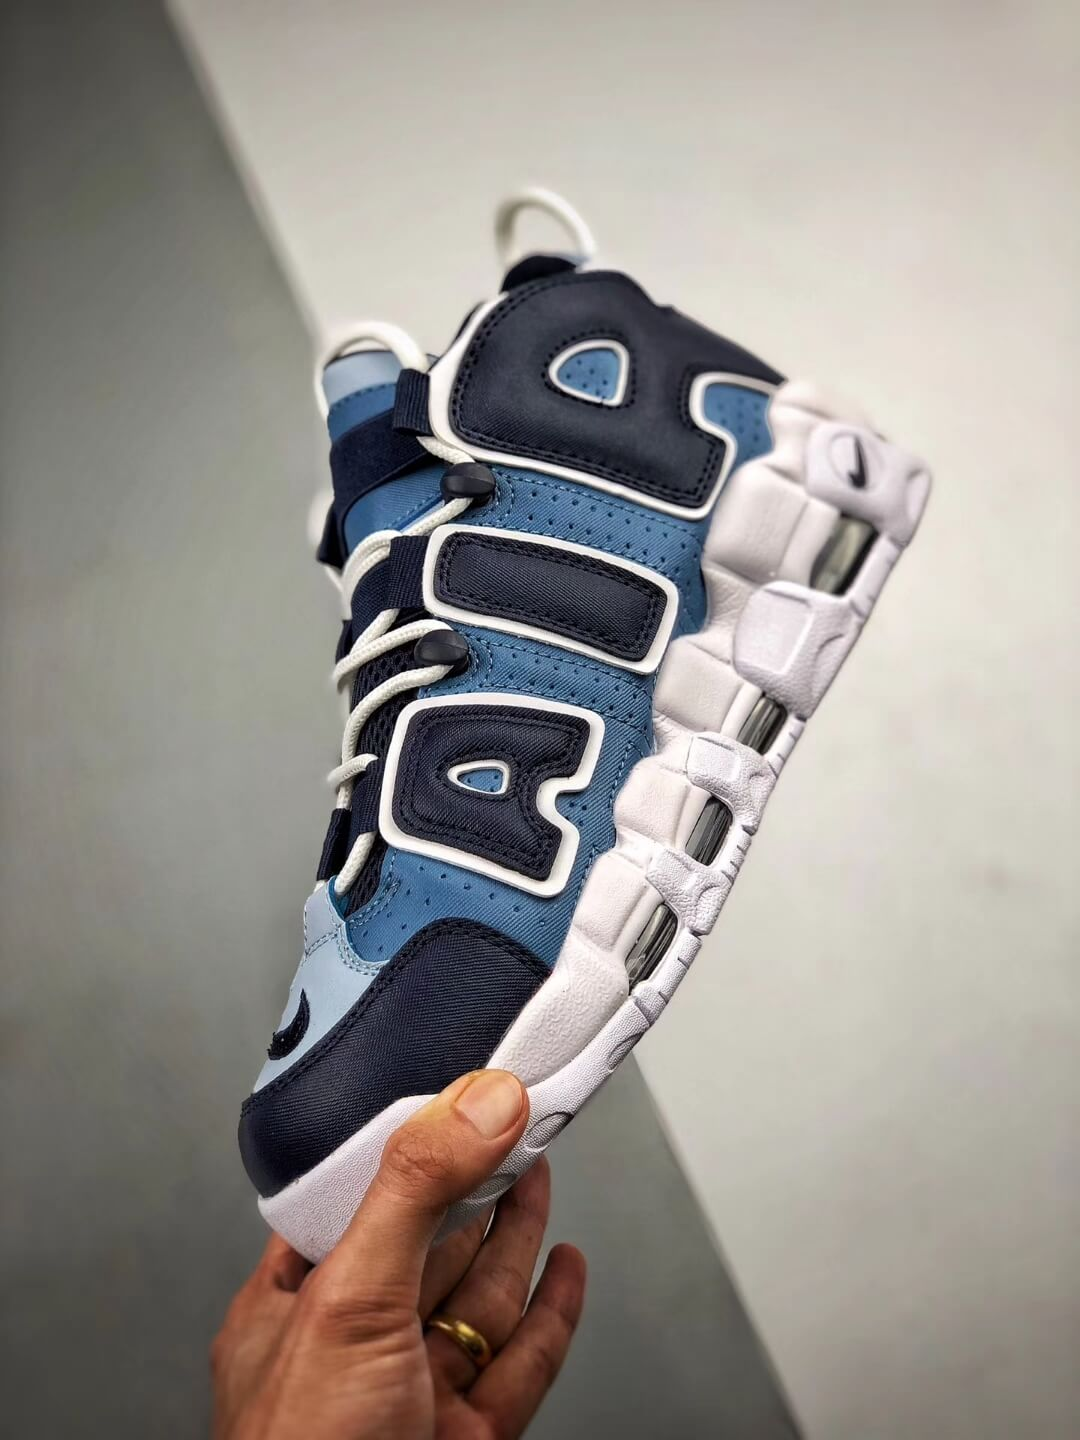 The Nike Air More Uptempo BP Denim Sneaker Blue jean Fabric Style Large AIR Scottie Pippen Rep Sneakers 04